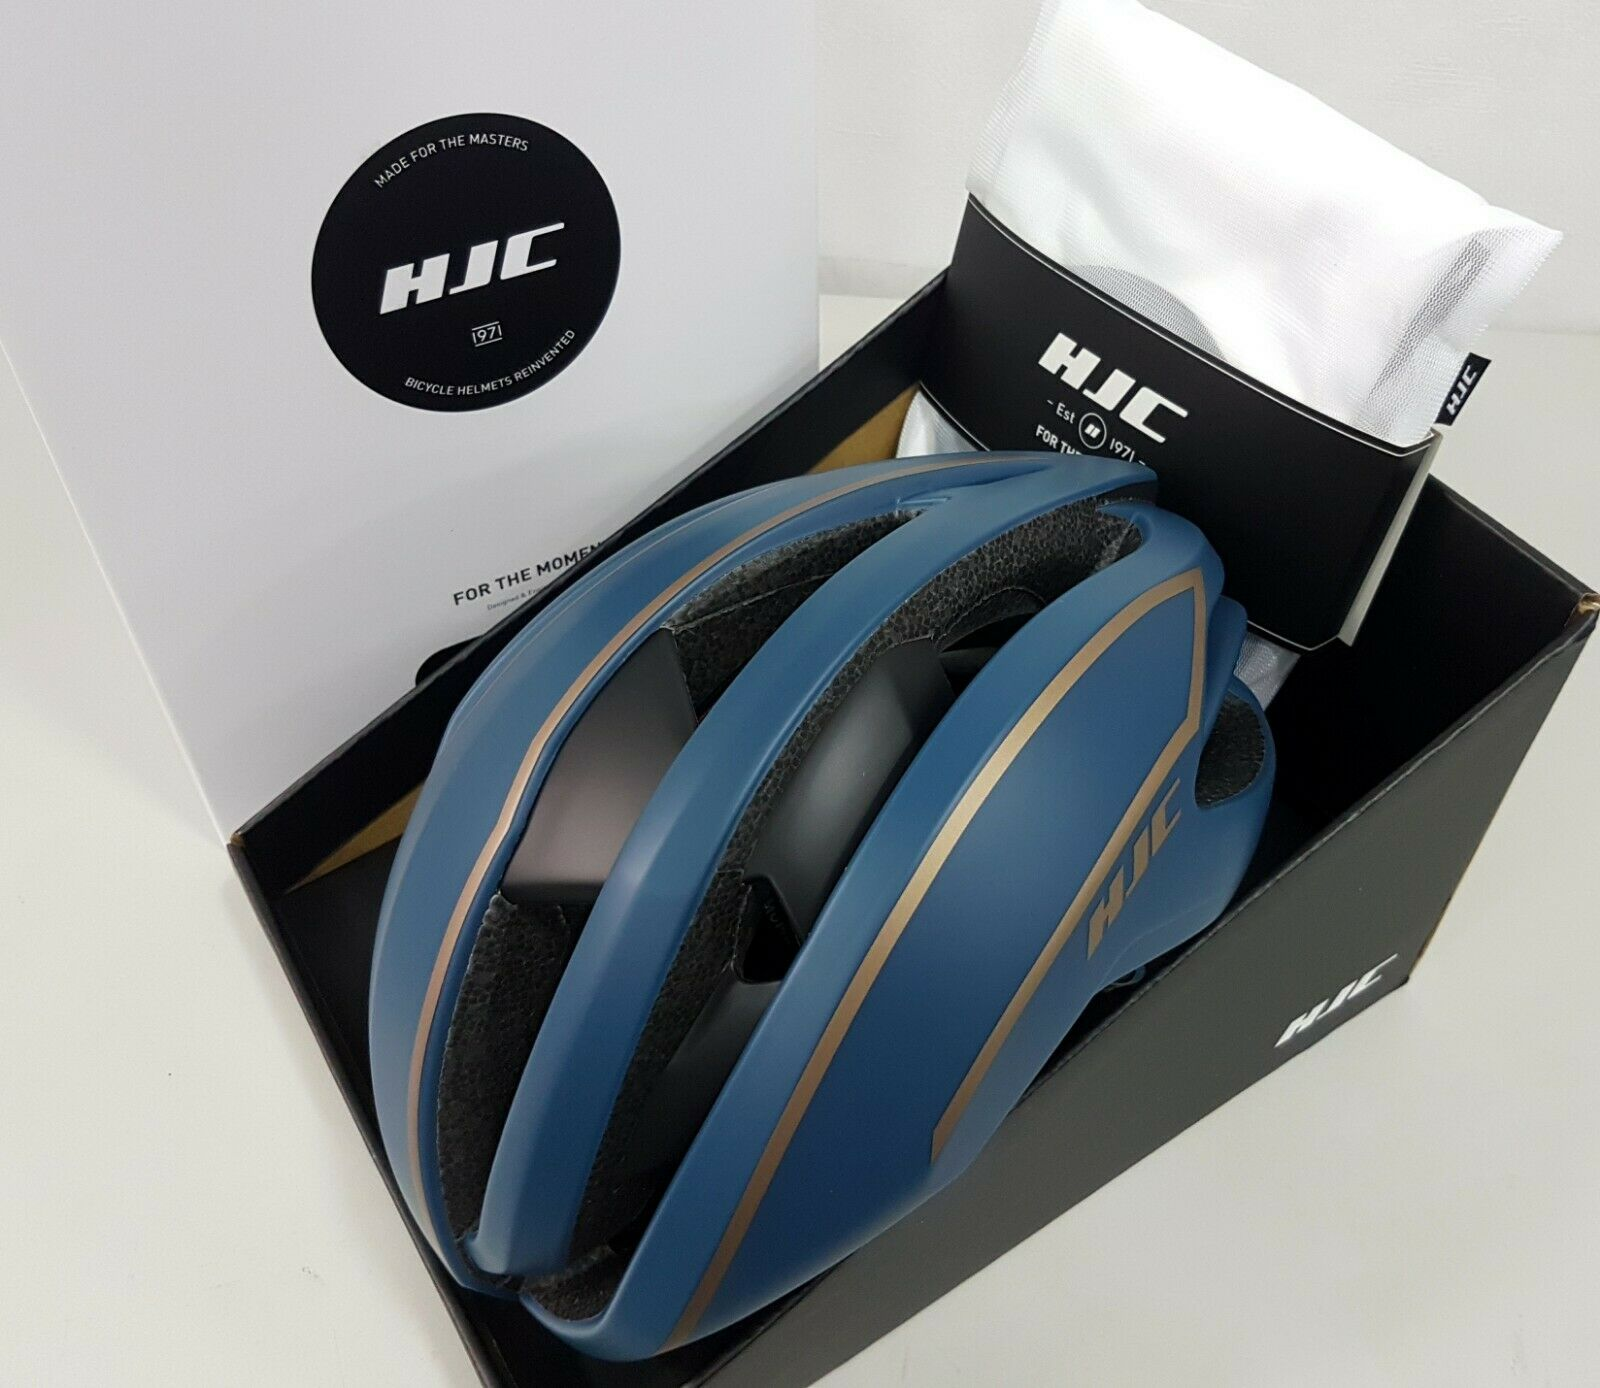 HJC Ibex Aerodynamic Ventilation Road Bike Helmet Matt Teal Bronze M 5559cm